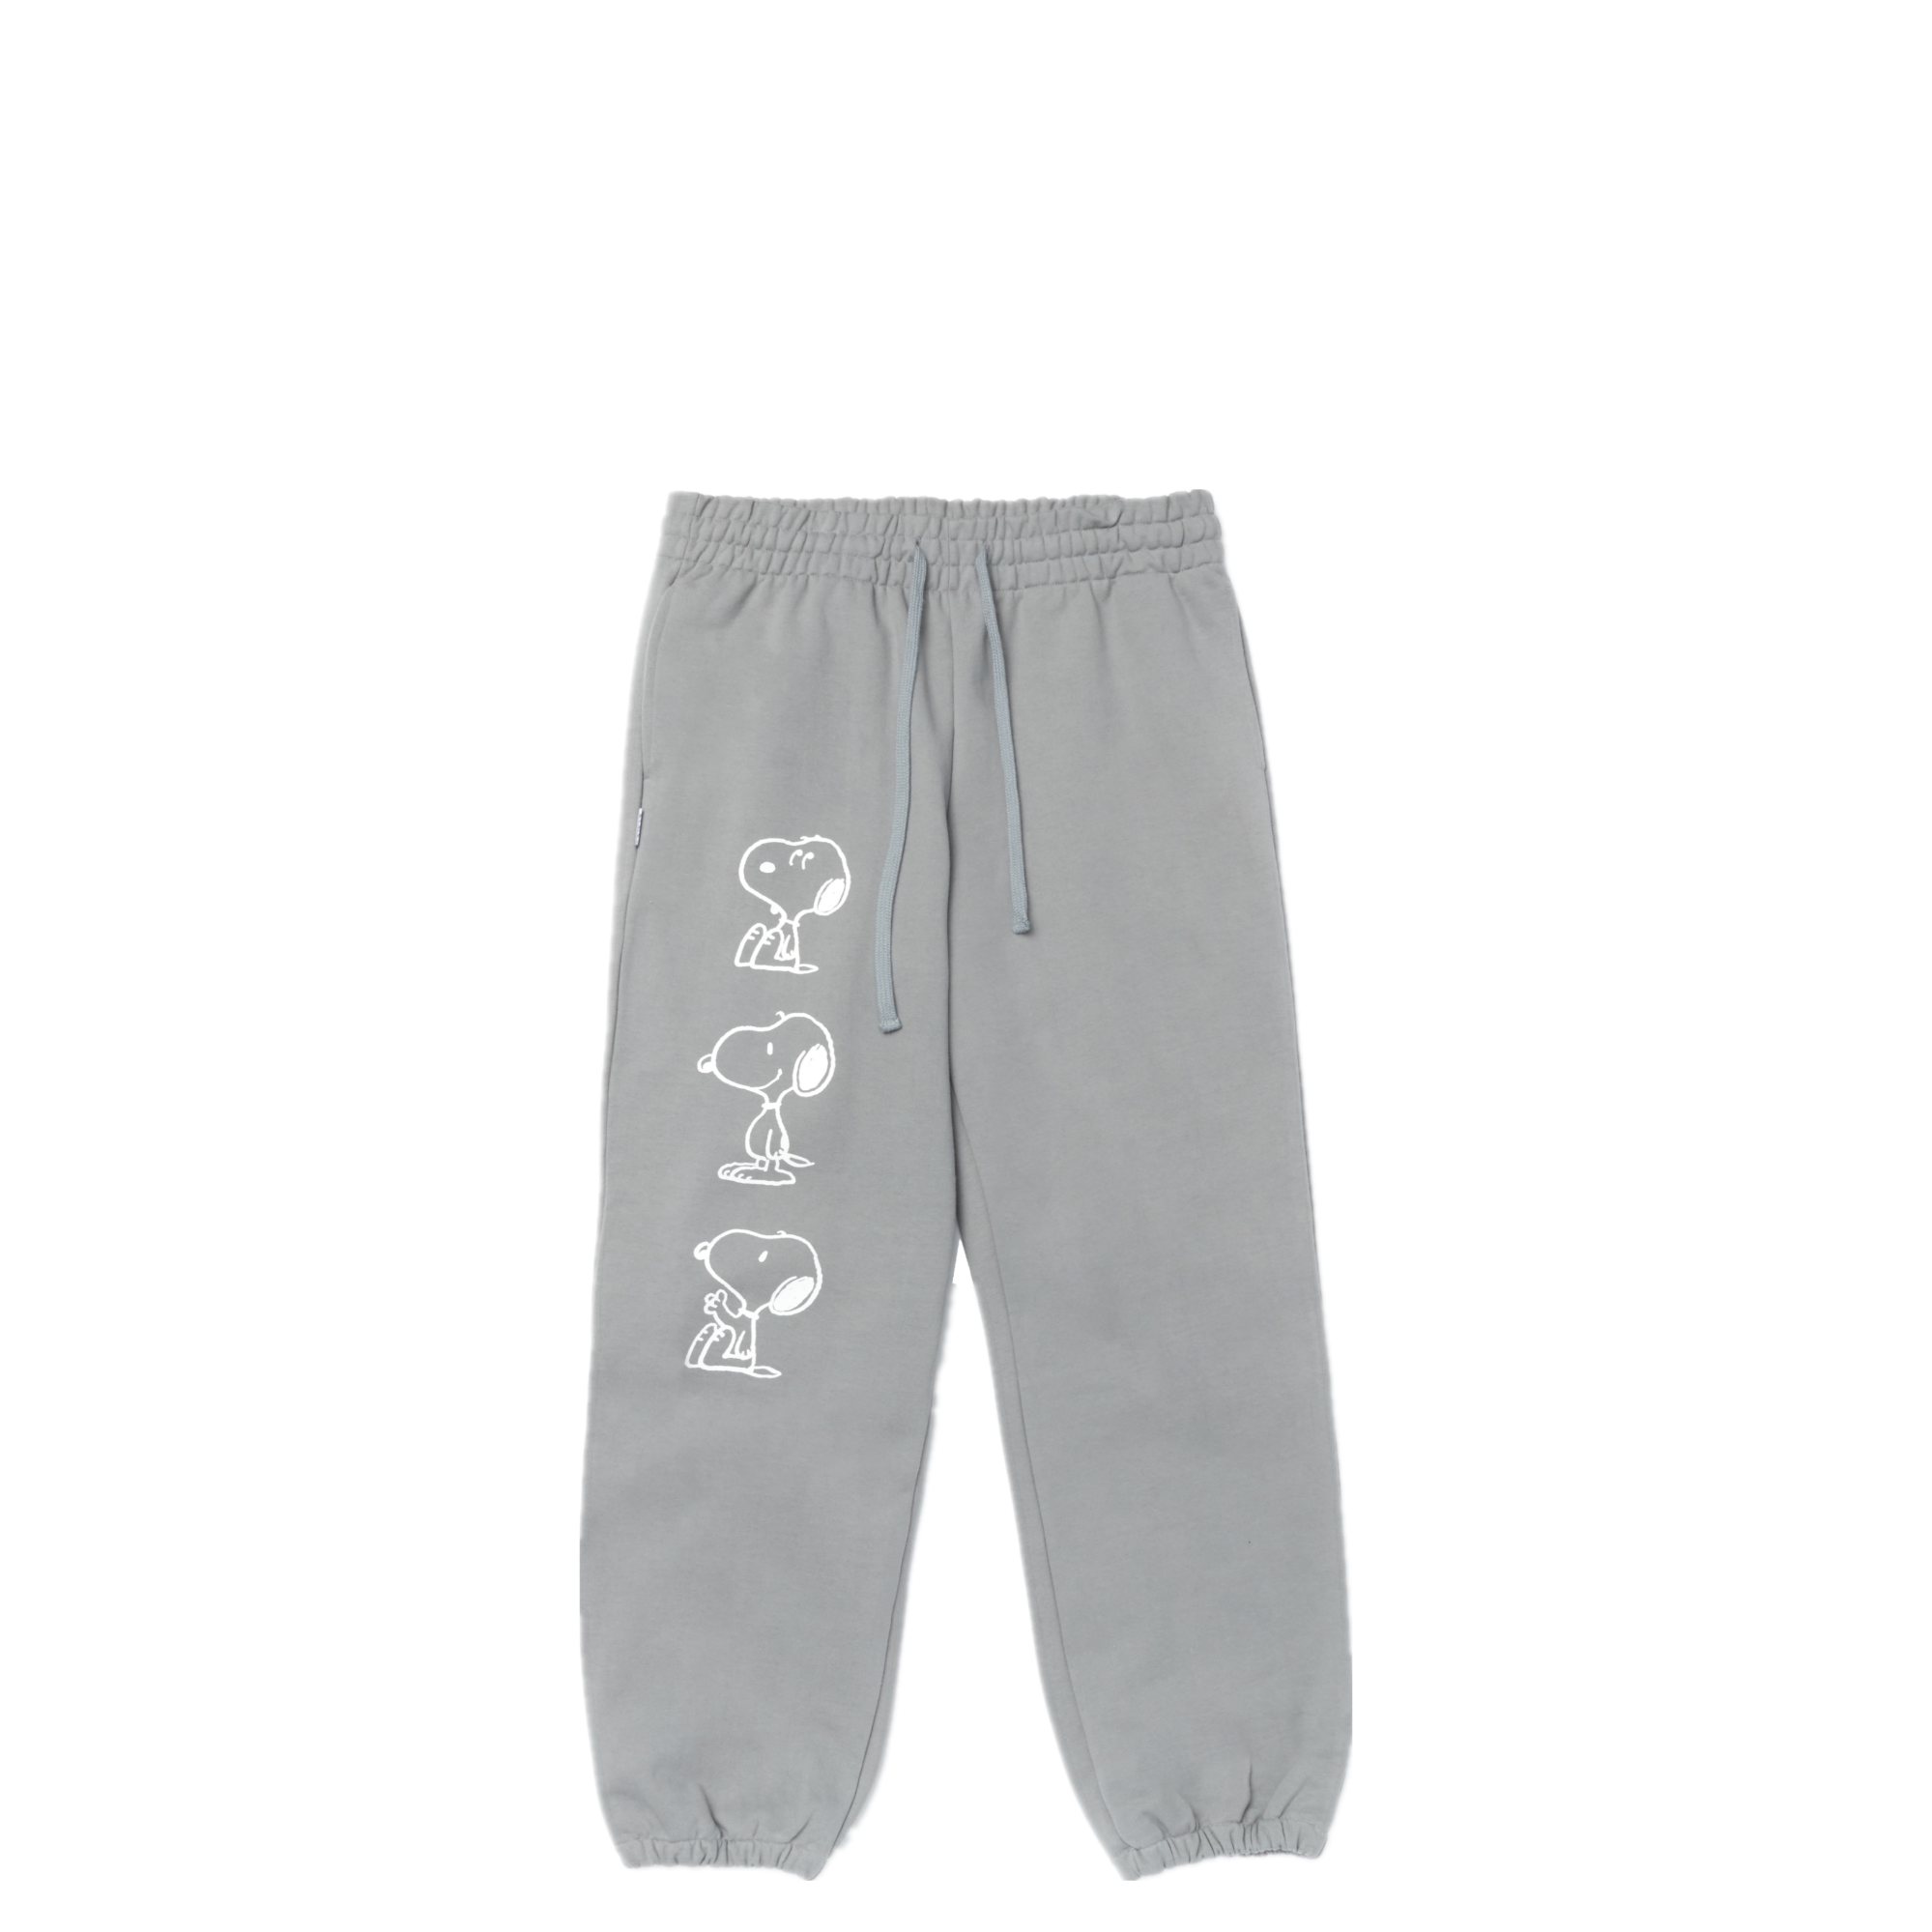 AGE X Snoopy 3 Bros Sweatpants GR/YL